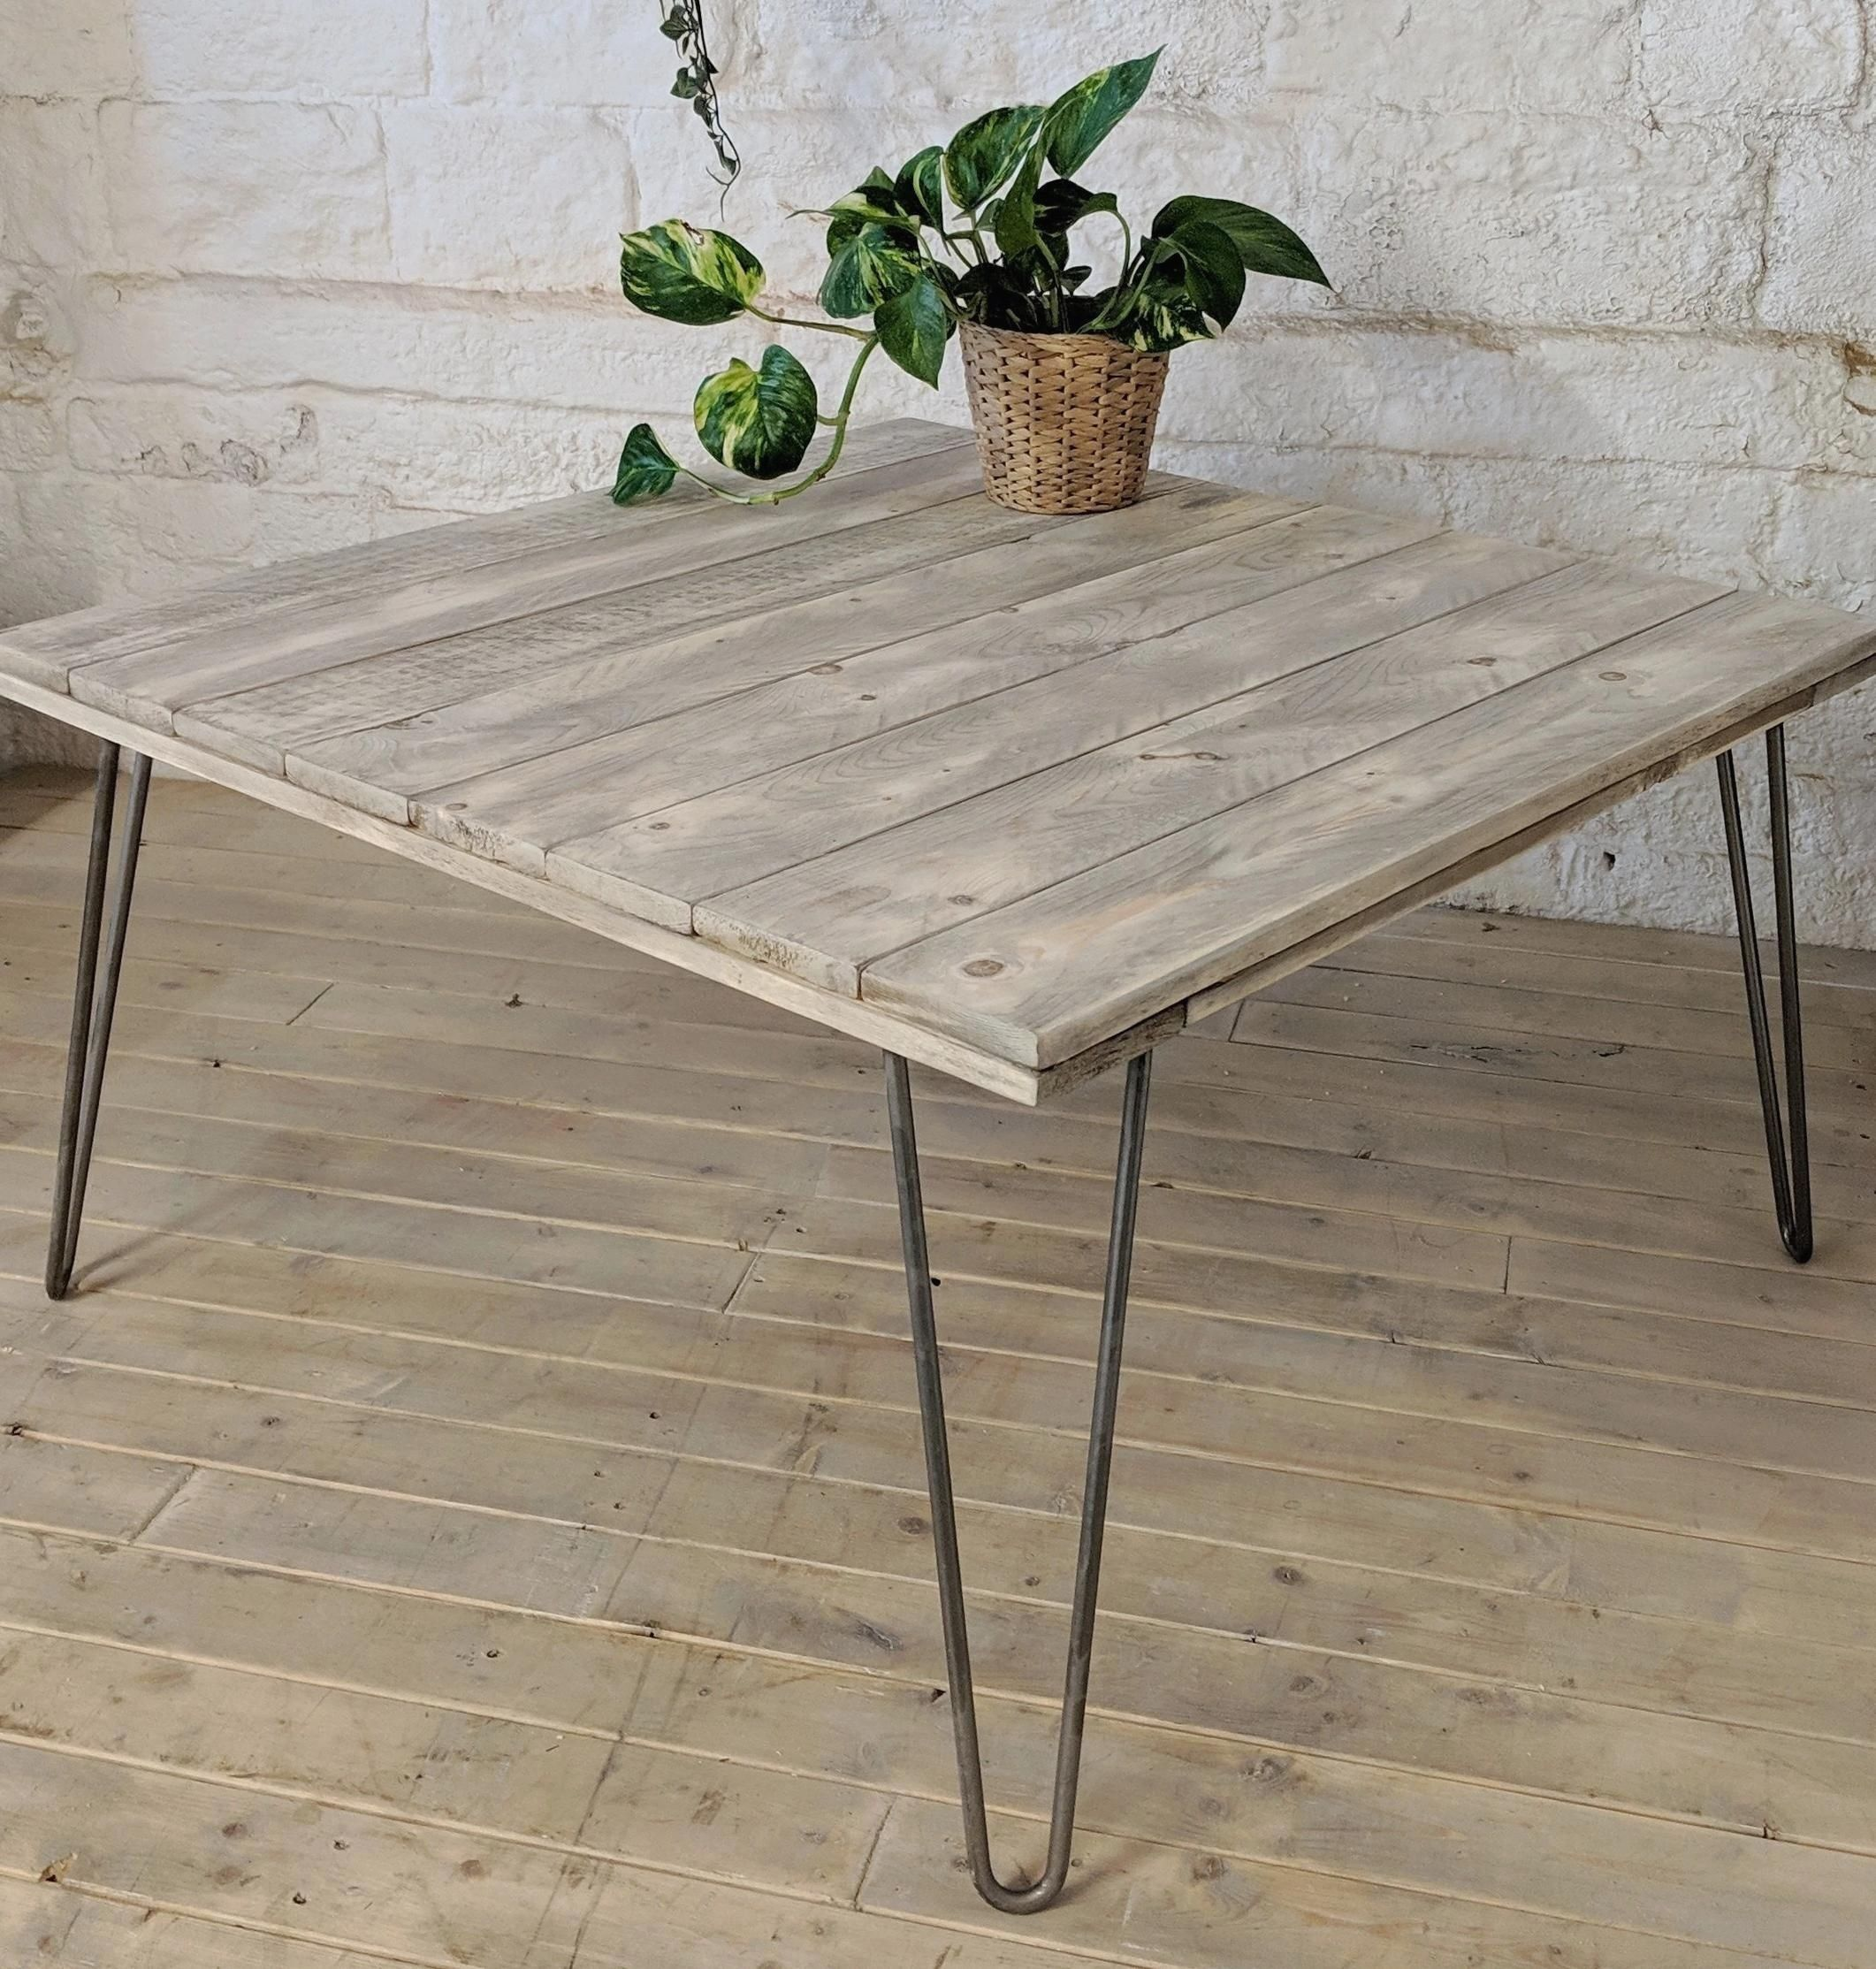 Rustic Grey Rustic Coffee Table Pohi With 40cm Hairpin Legs 1000 Coffee Table Wood Pallet Wood Coffee Table Coffee Table Grey [ 2227 x 2122 Pixel ]